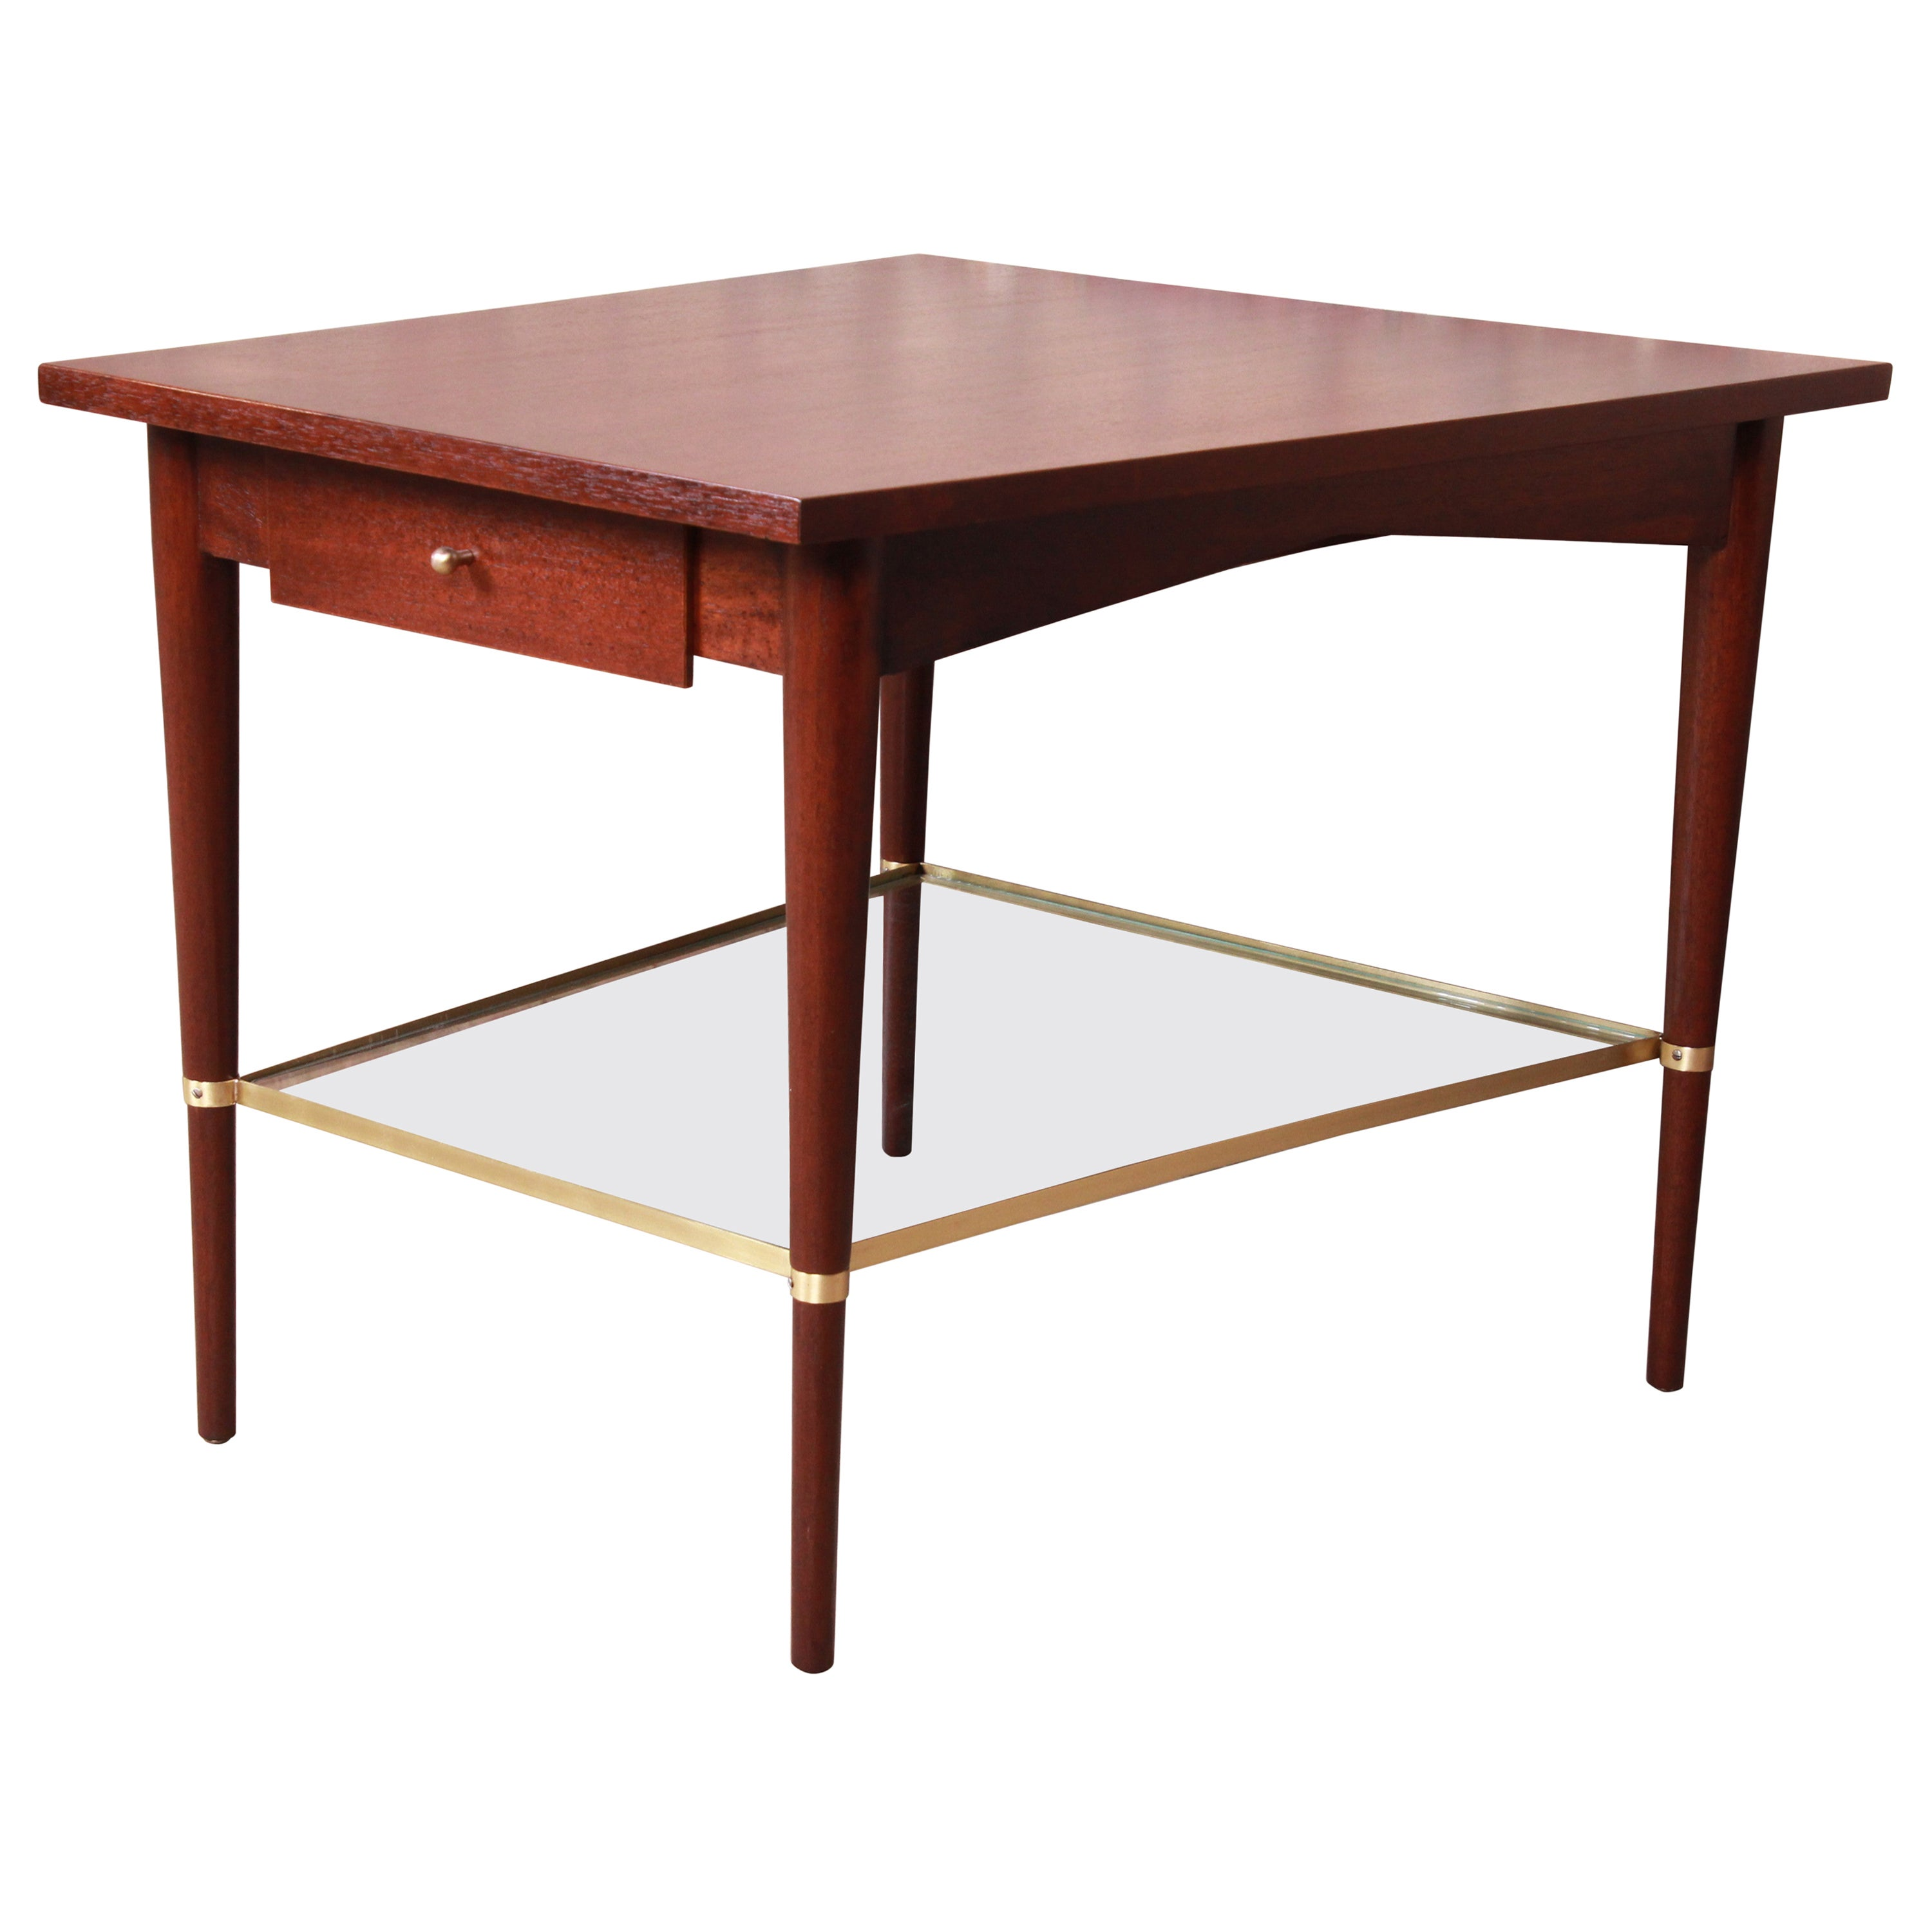 Paul McCobb Connoisseur Collection Mahogany and Brass Wedge Side Table, Restored